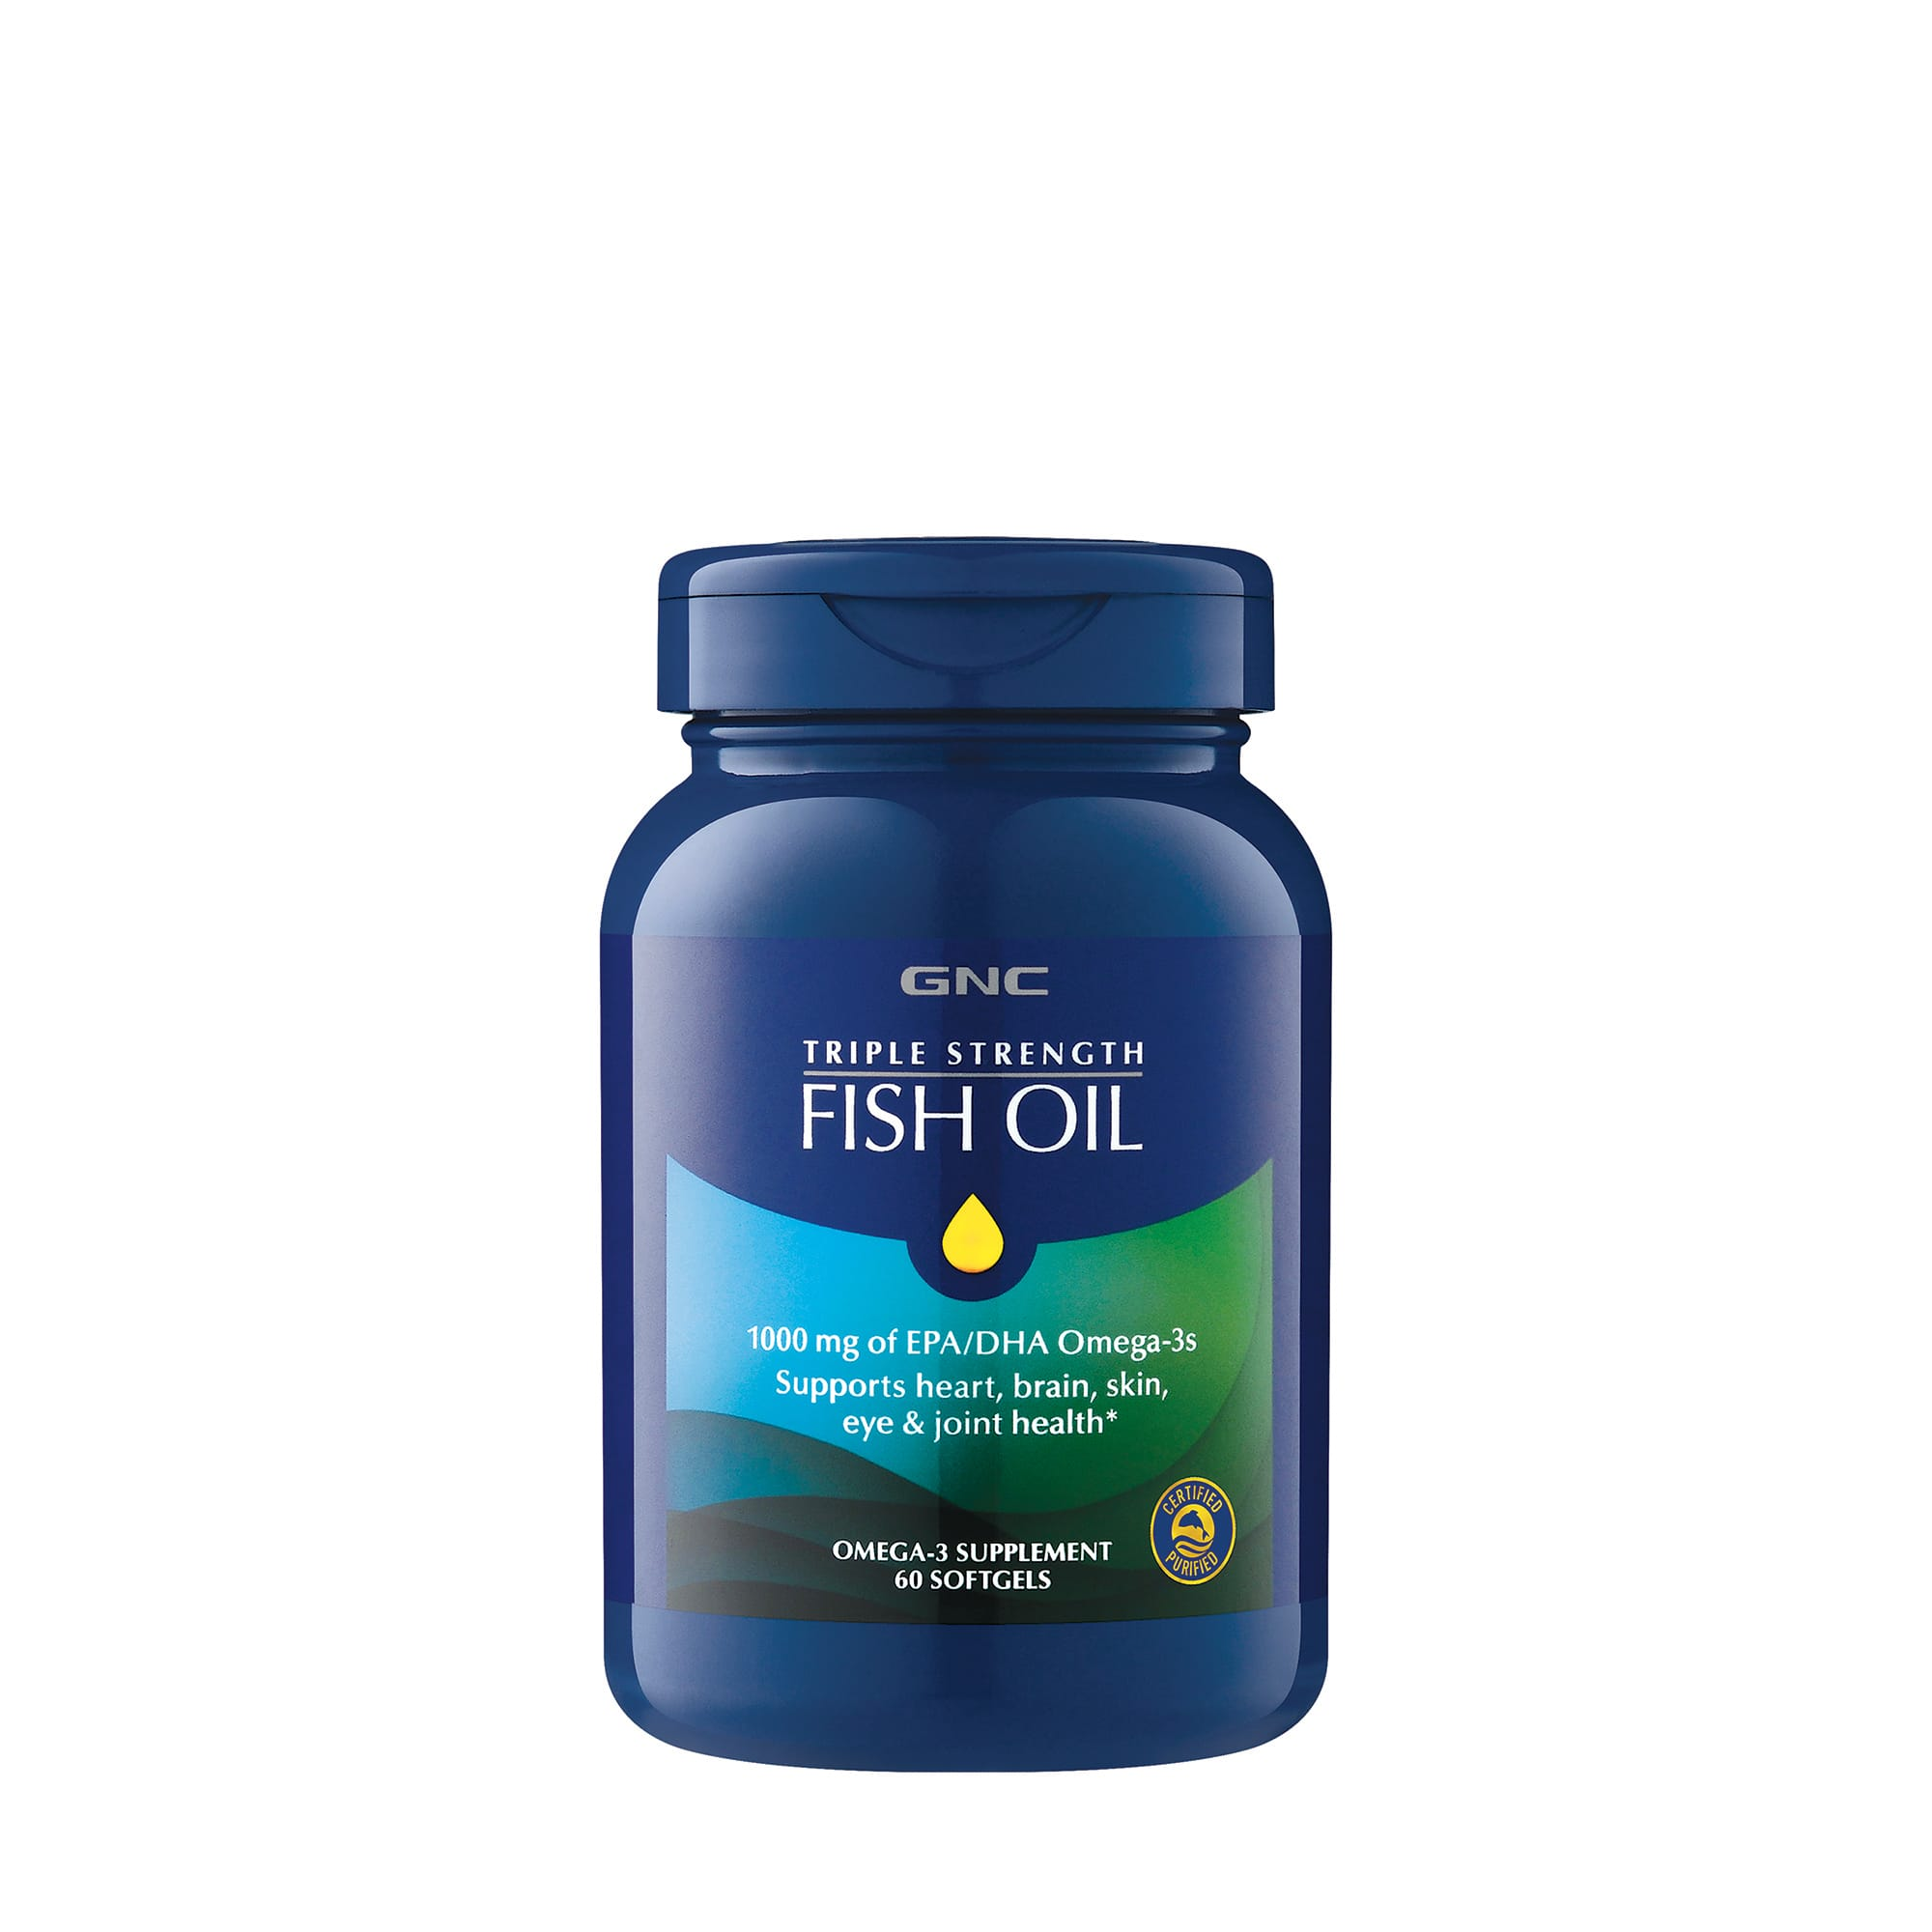 GNC Vitamins, Minerals and Supplements Sale 3 for $21.24 Plus $4 PayPal Credit via Slickdeals rebate ($17.24 AR) + Free S&H w/ Subscription